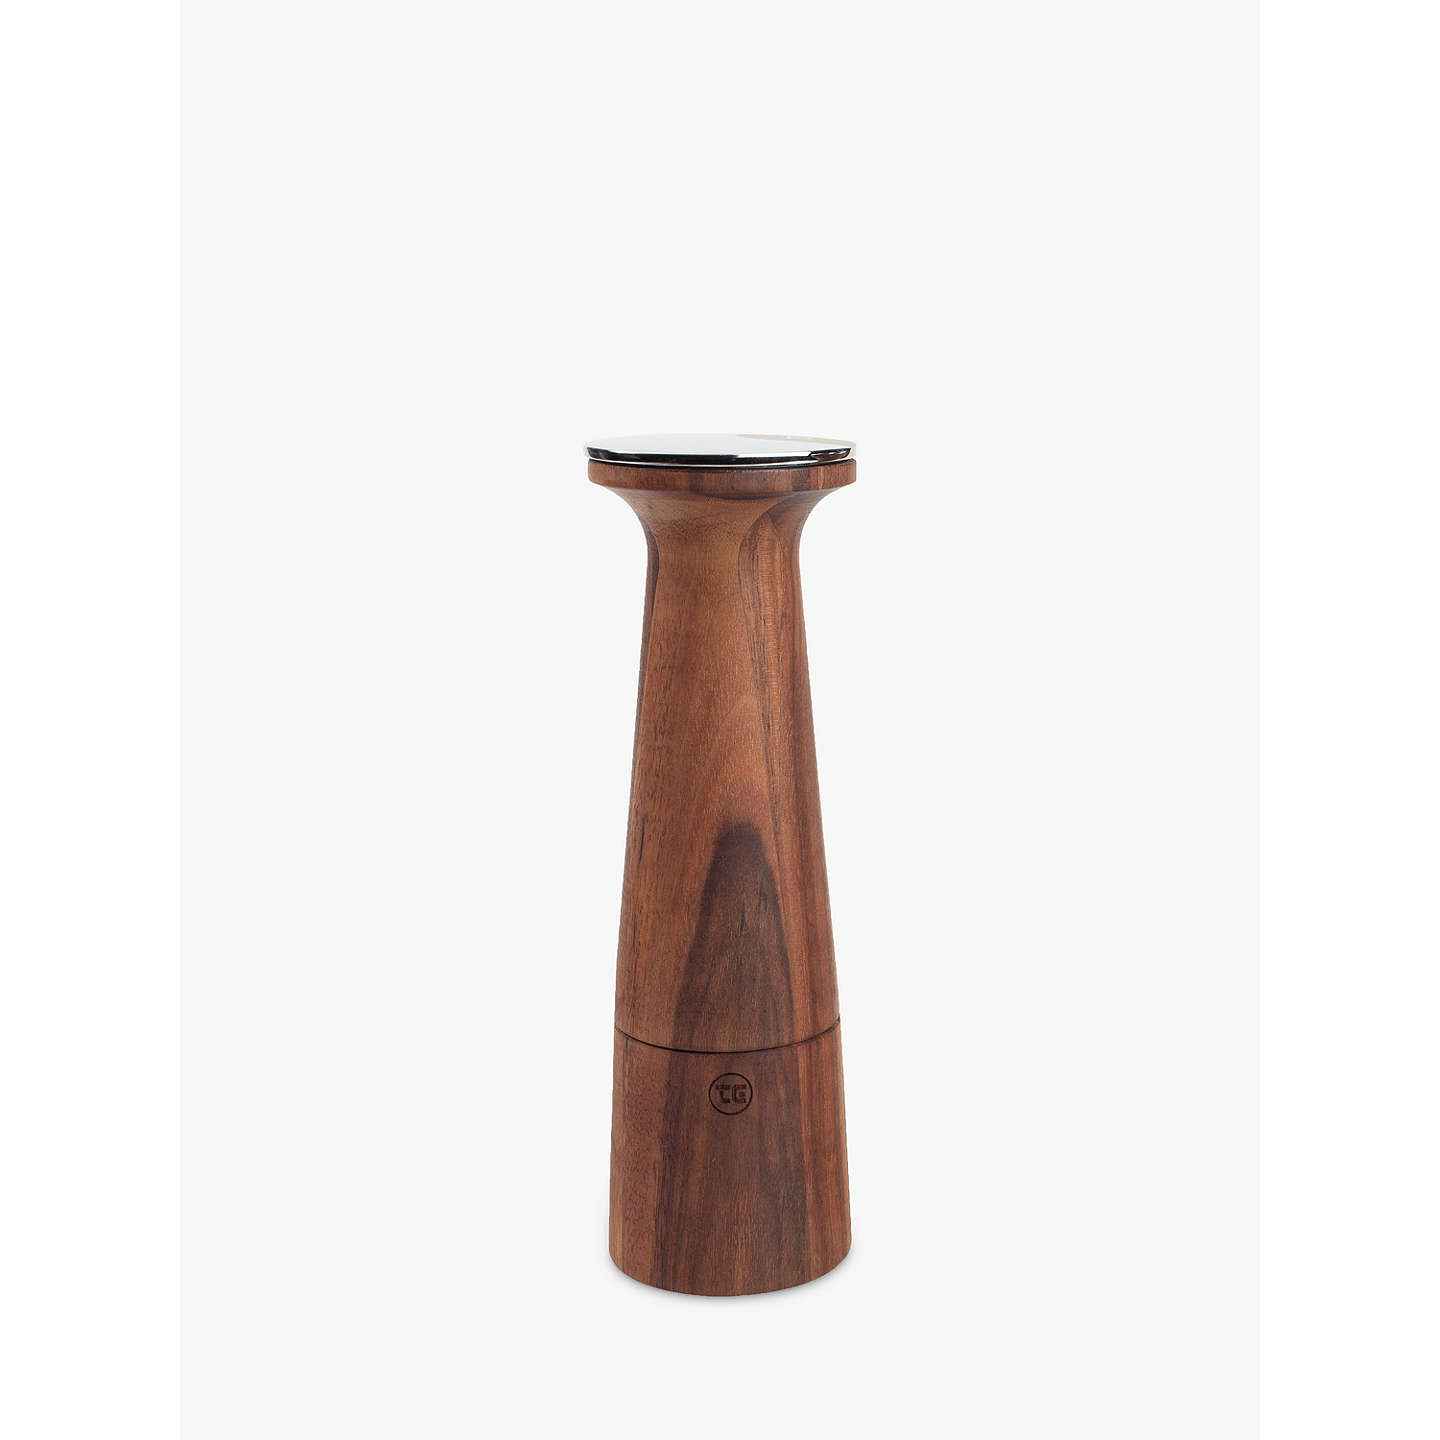 BuyT & G Oblique Pepper Mill Online at johnlewis.com